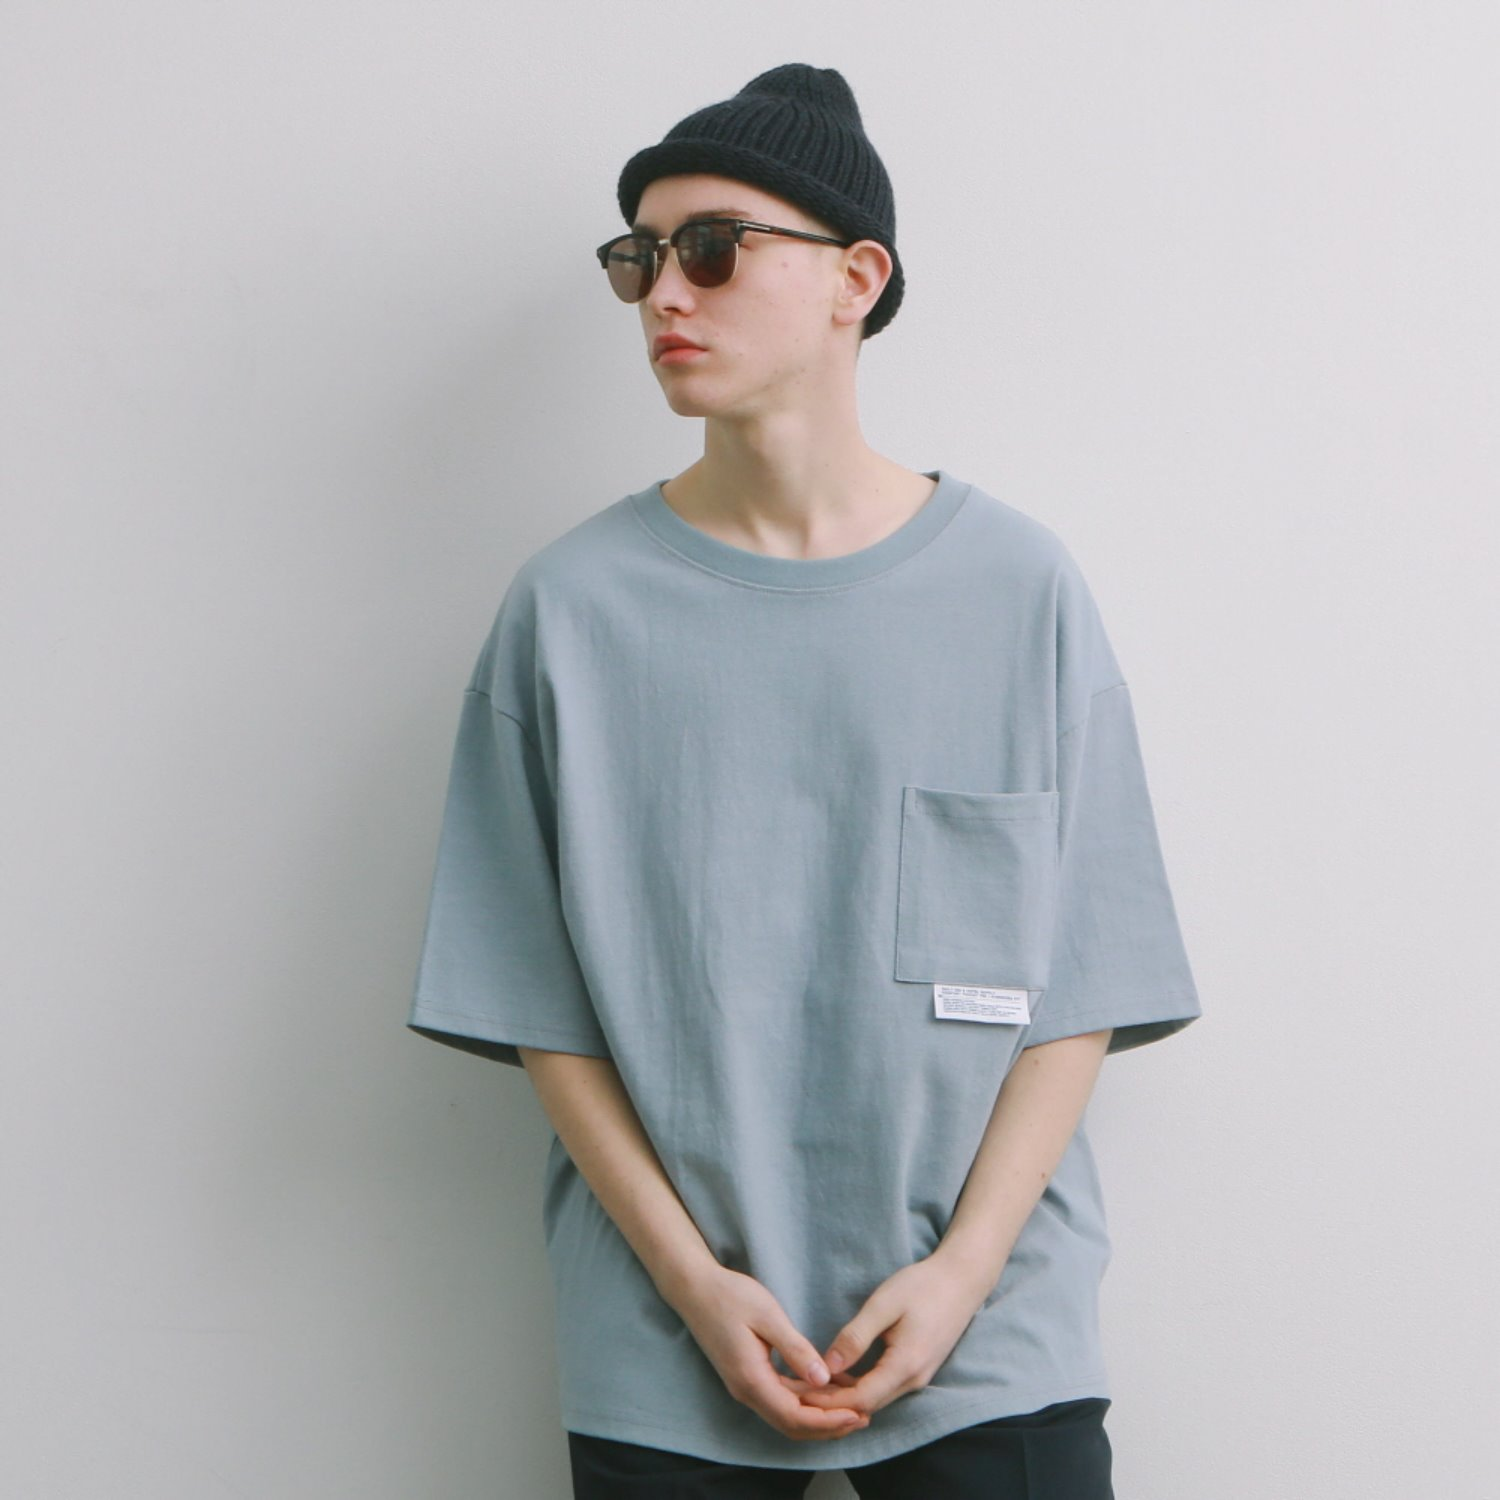 DailyInn Tourist Comfortable Oversized Pocket Tee (Rain Blue)